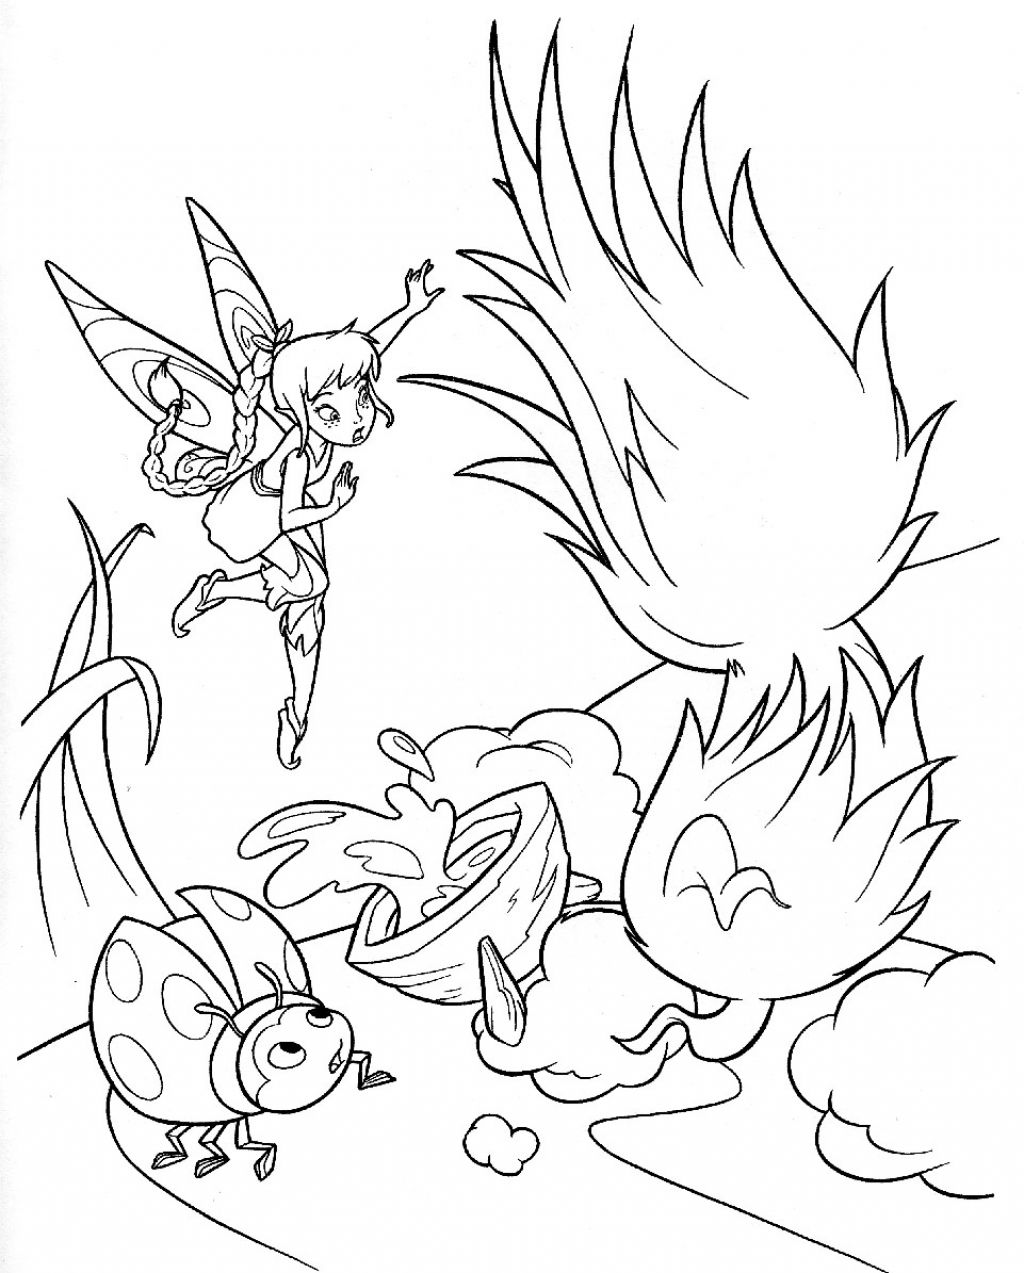 emo tinkerbell coloring pages - photo#35